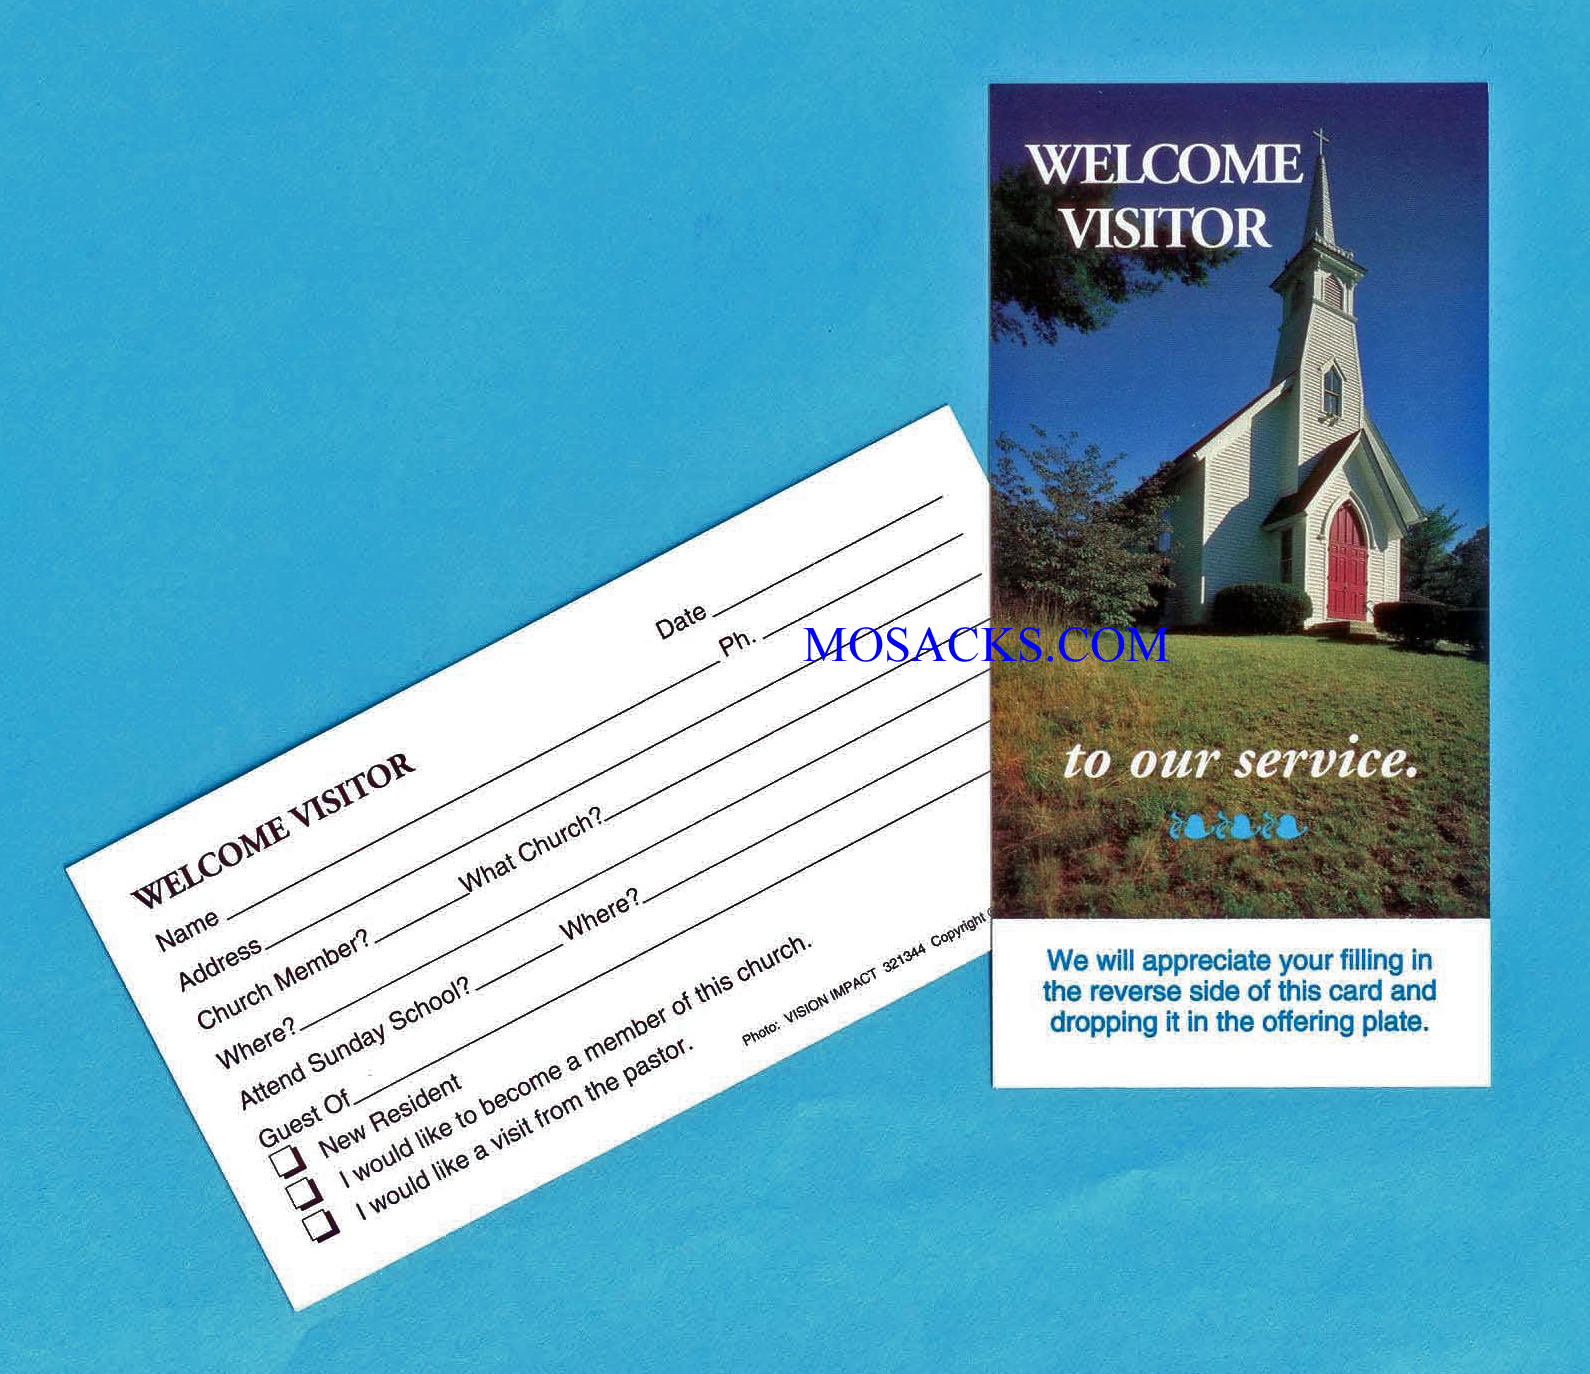 "Welcome Visitor Card 3"" x 5"", 25 Count"